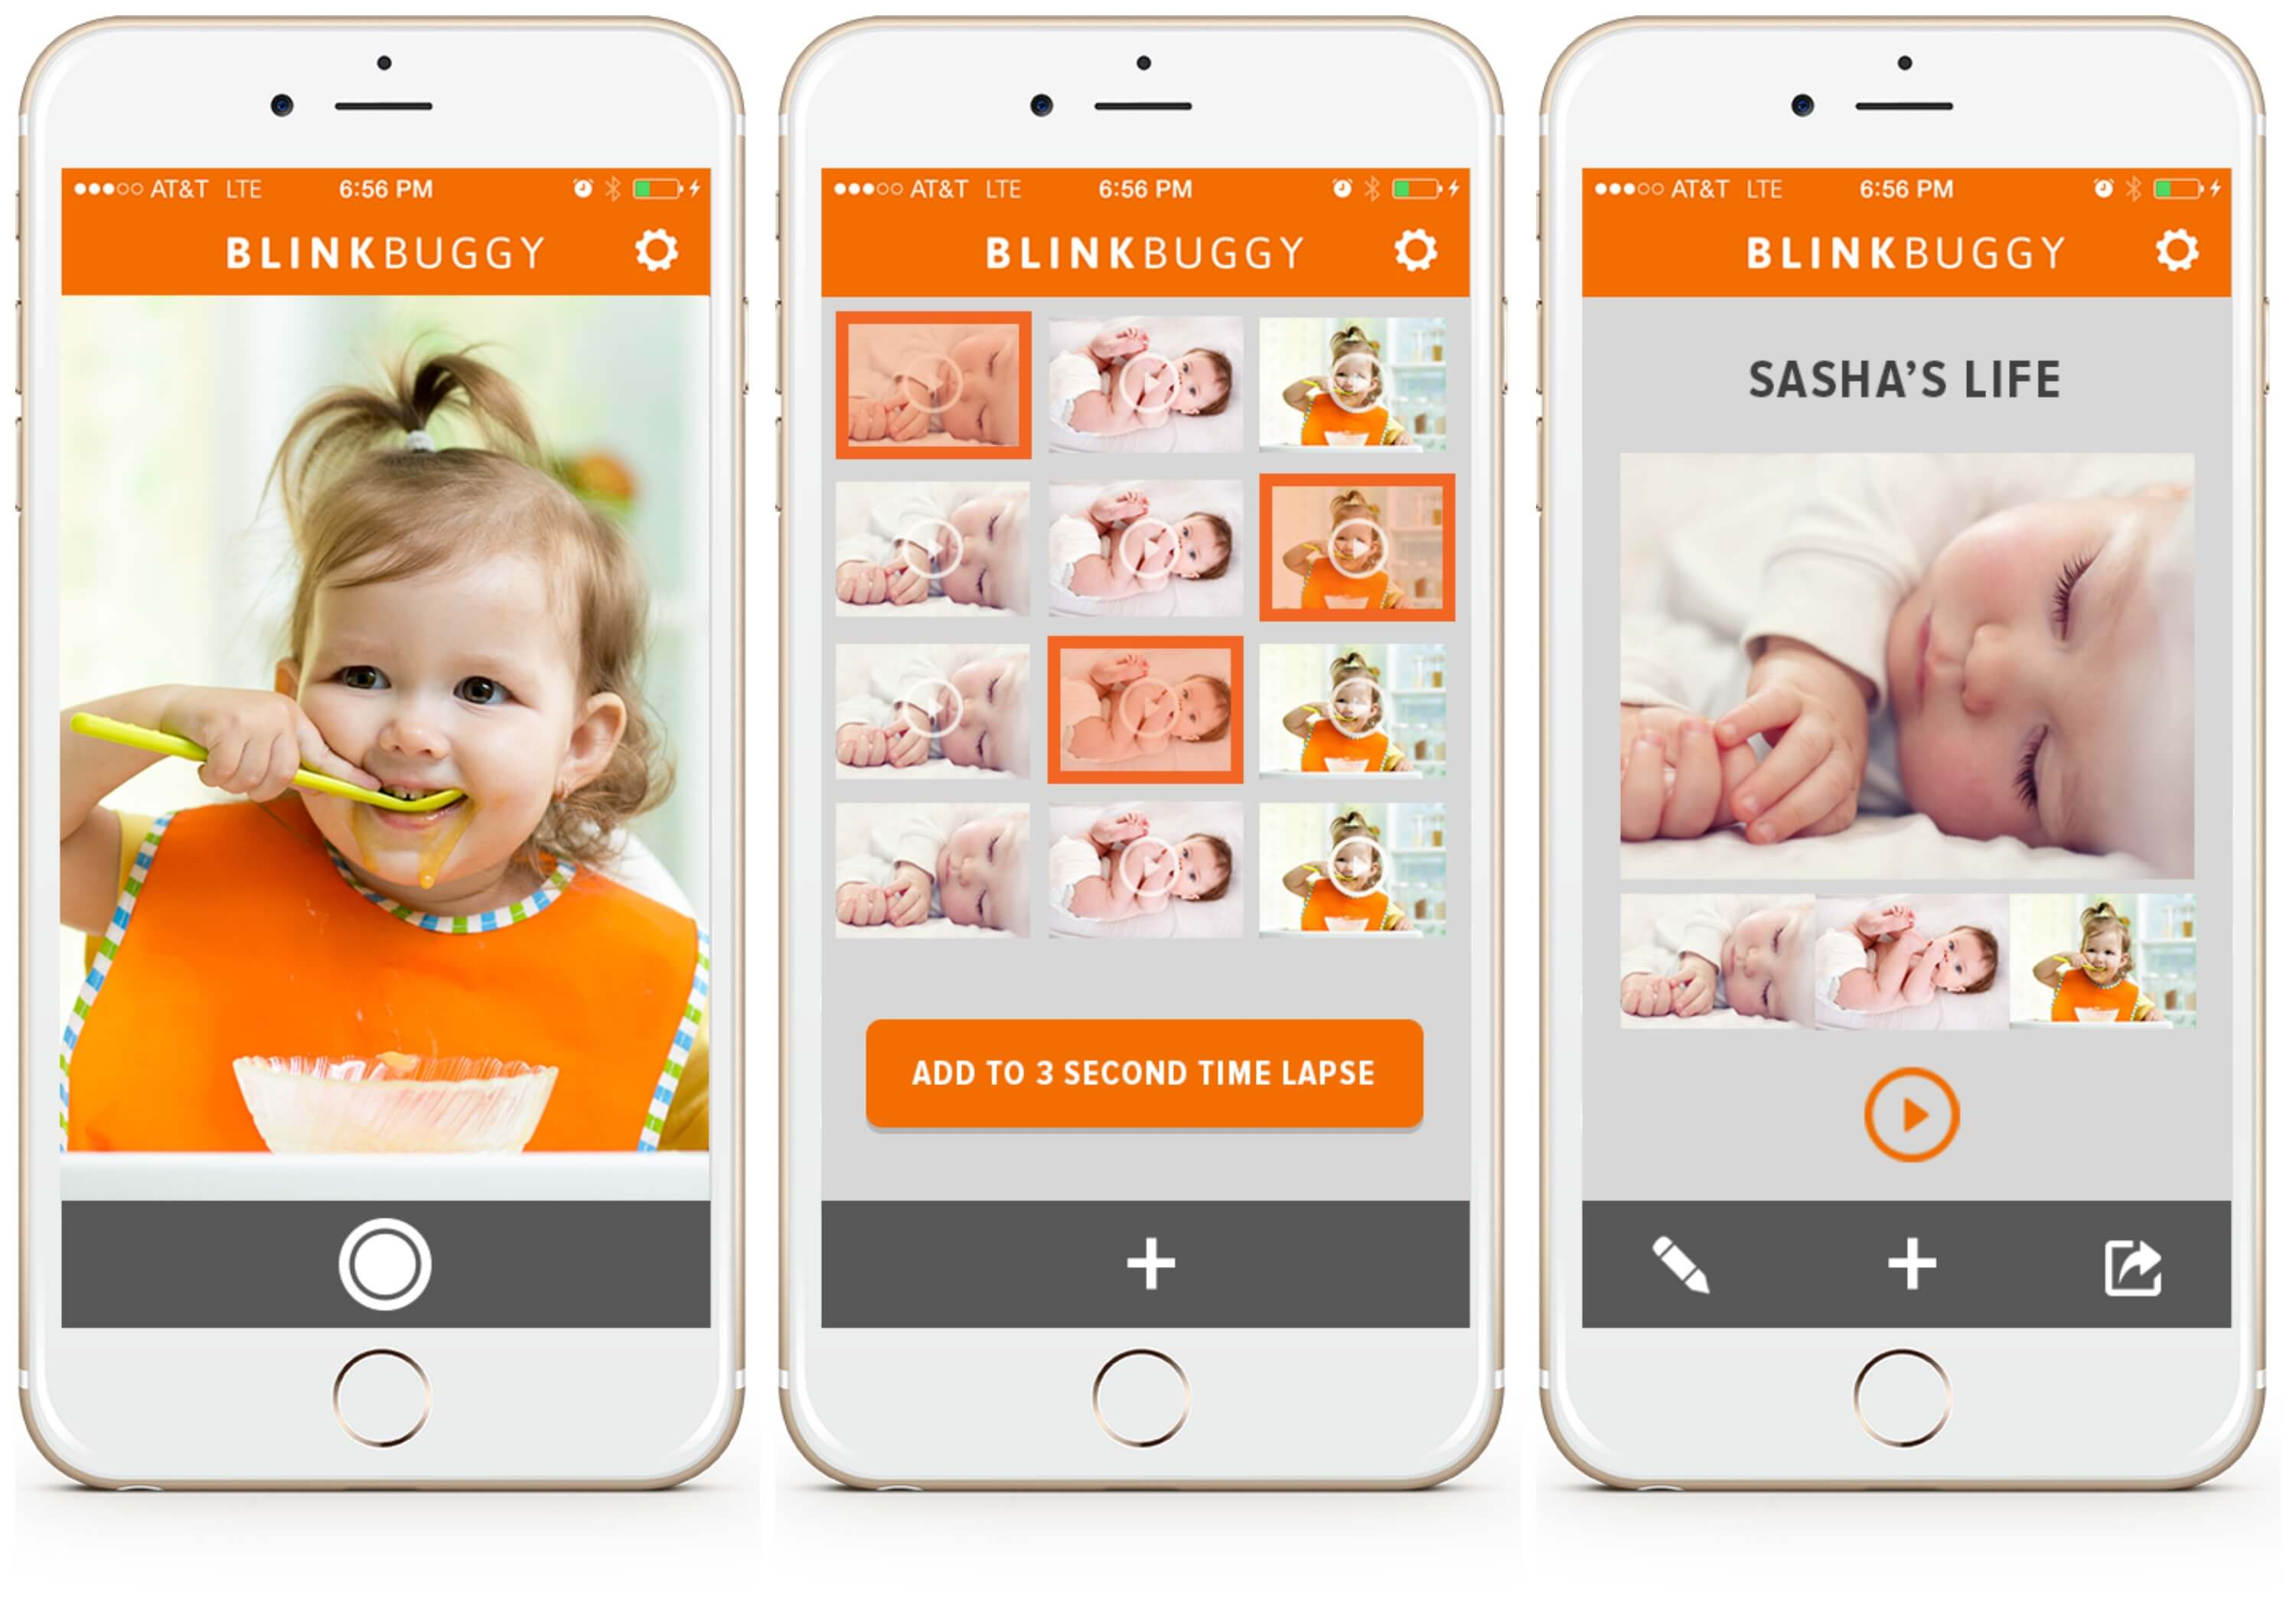 This free app creates a time lapse video of your child growing up!